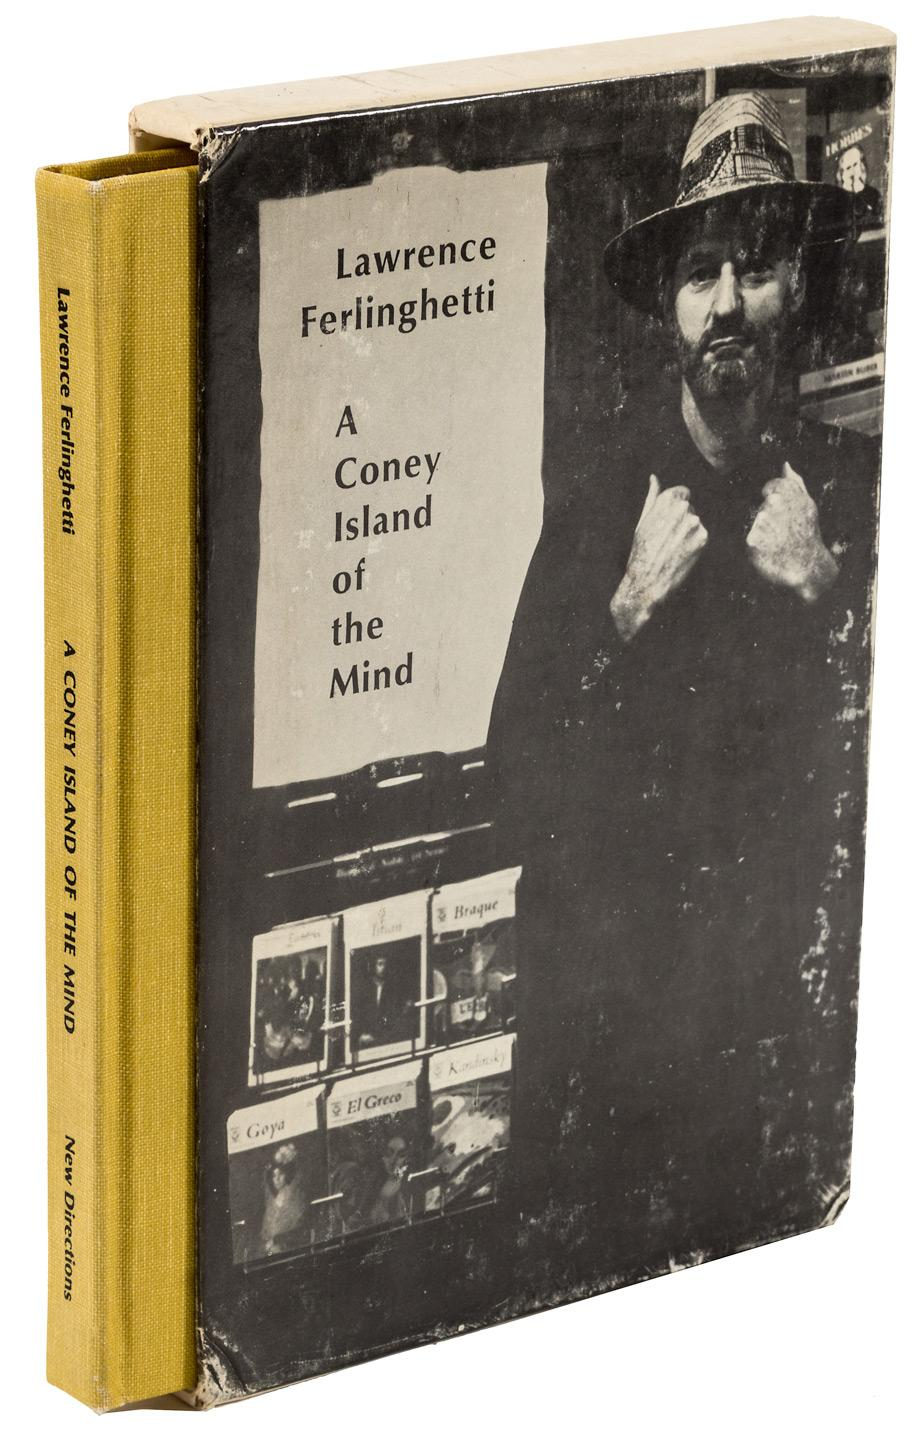 a coney island of the mind full text